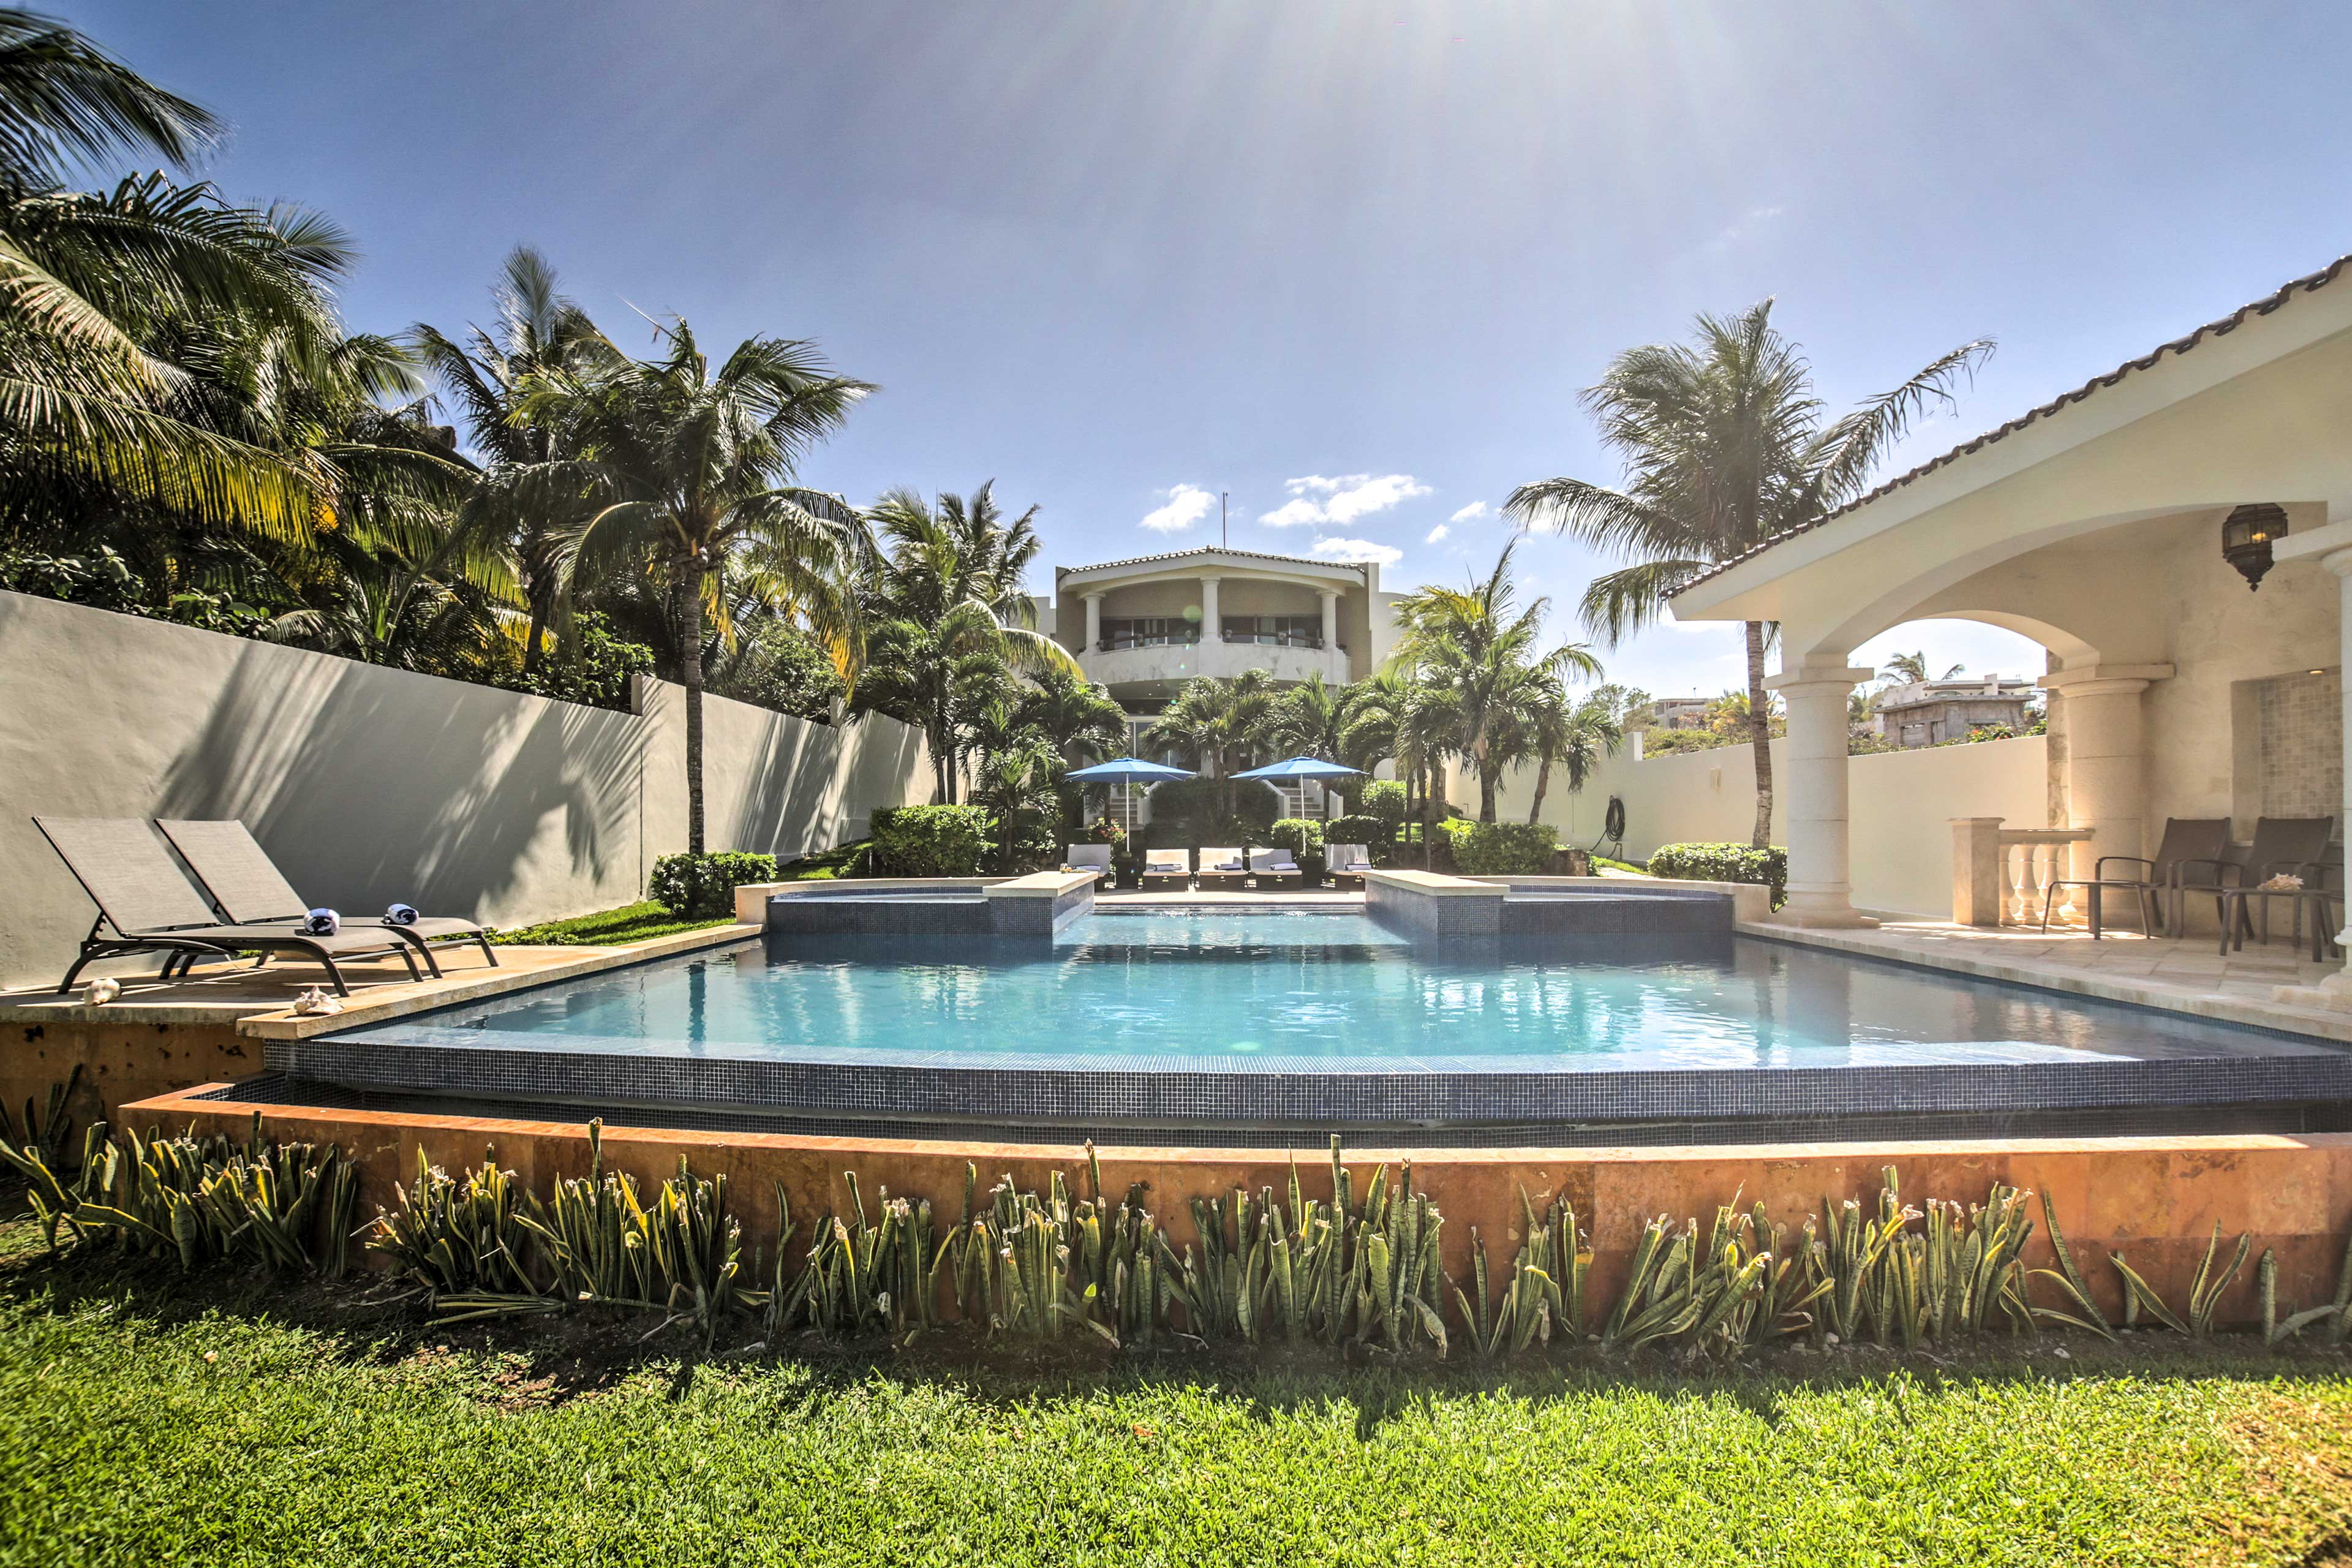 This vacation rental villa offers accommodations for 16.